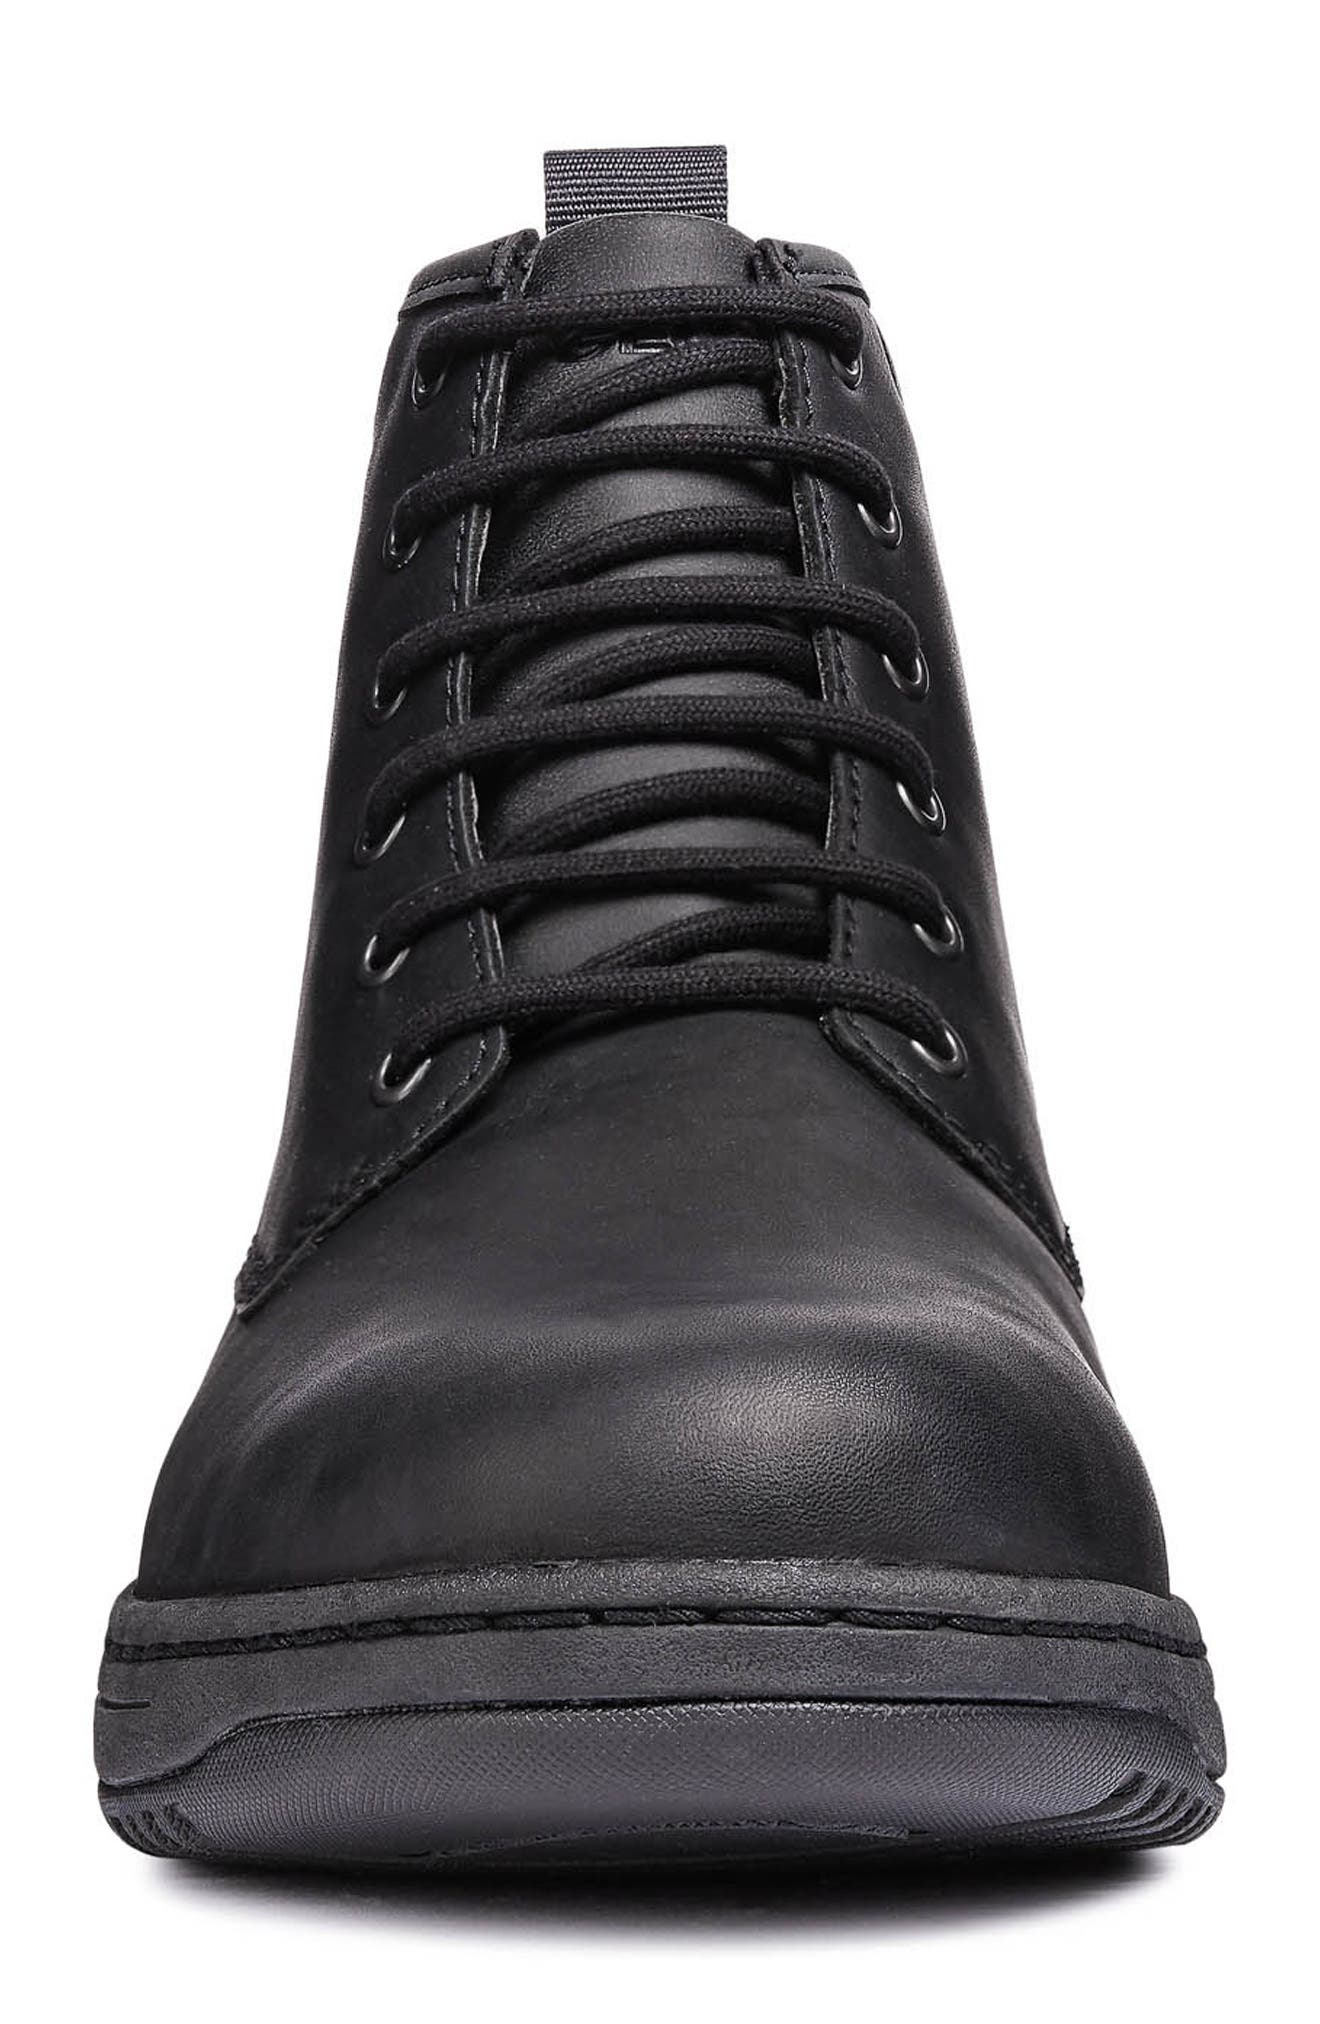 Abroad ABX 2 Tall Lace-Up Boot,                             Alternate thumbnail 4, color,                             BLACK